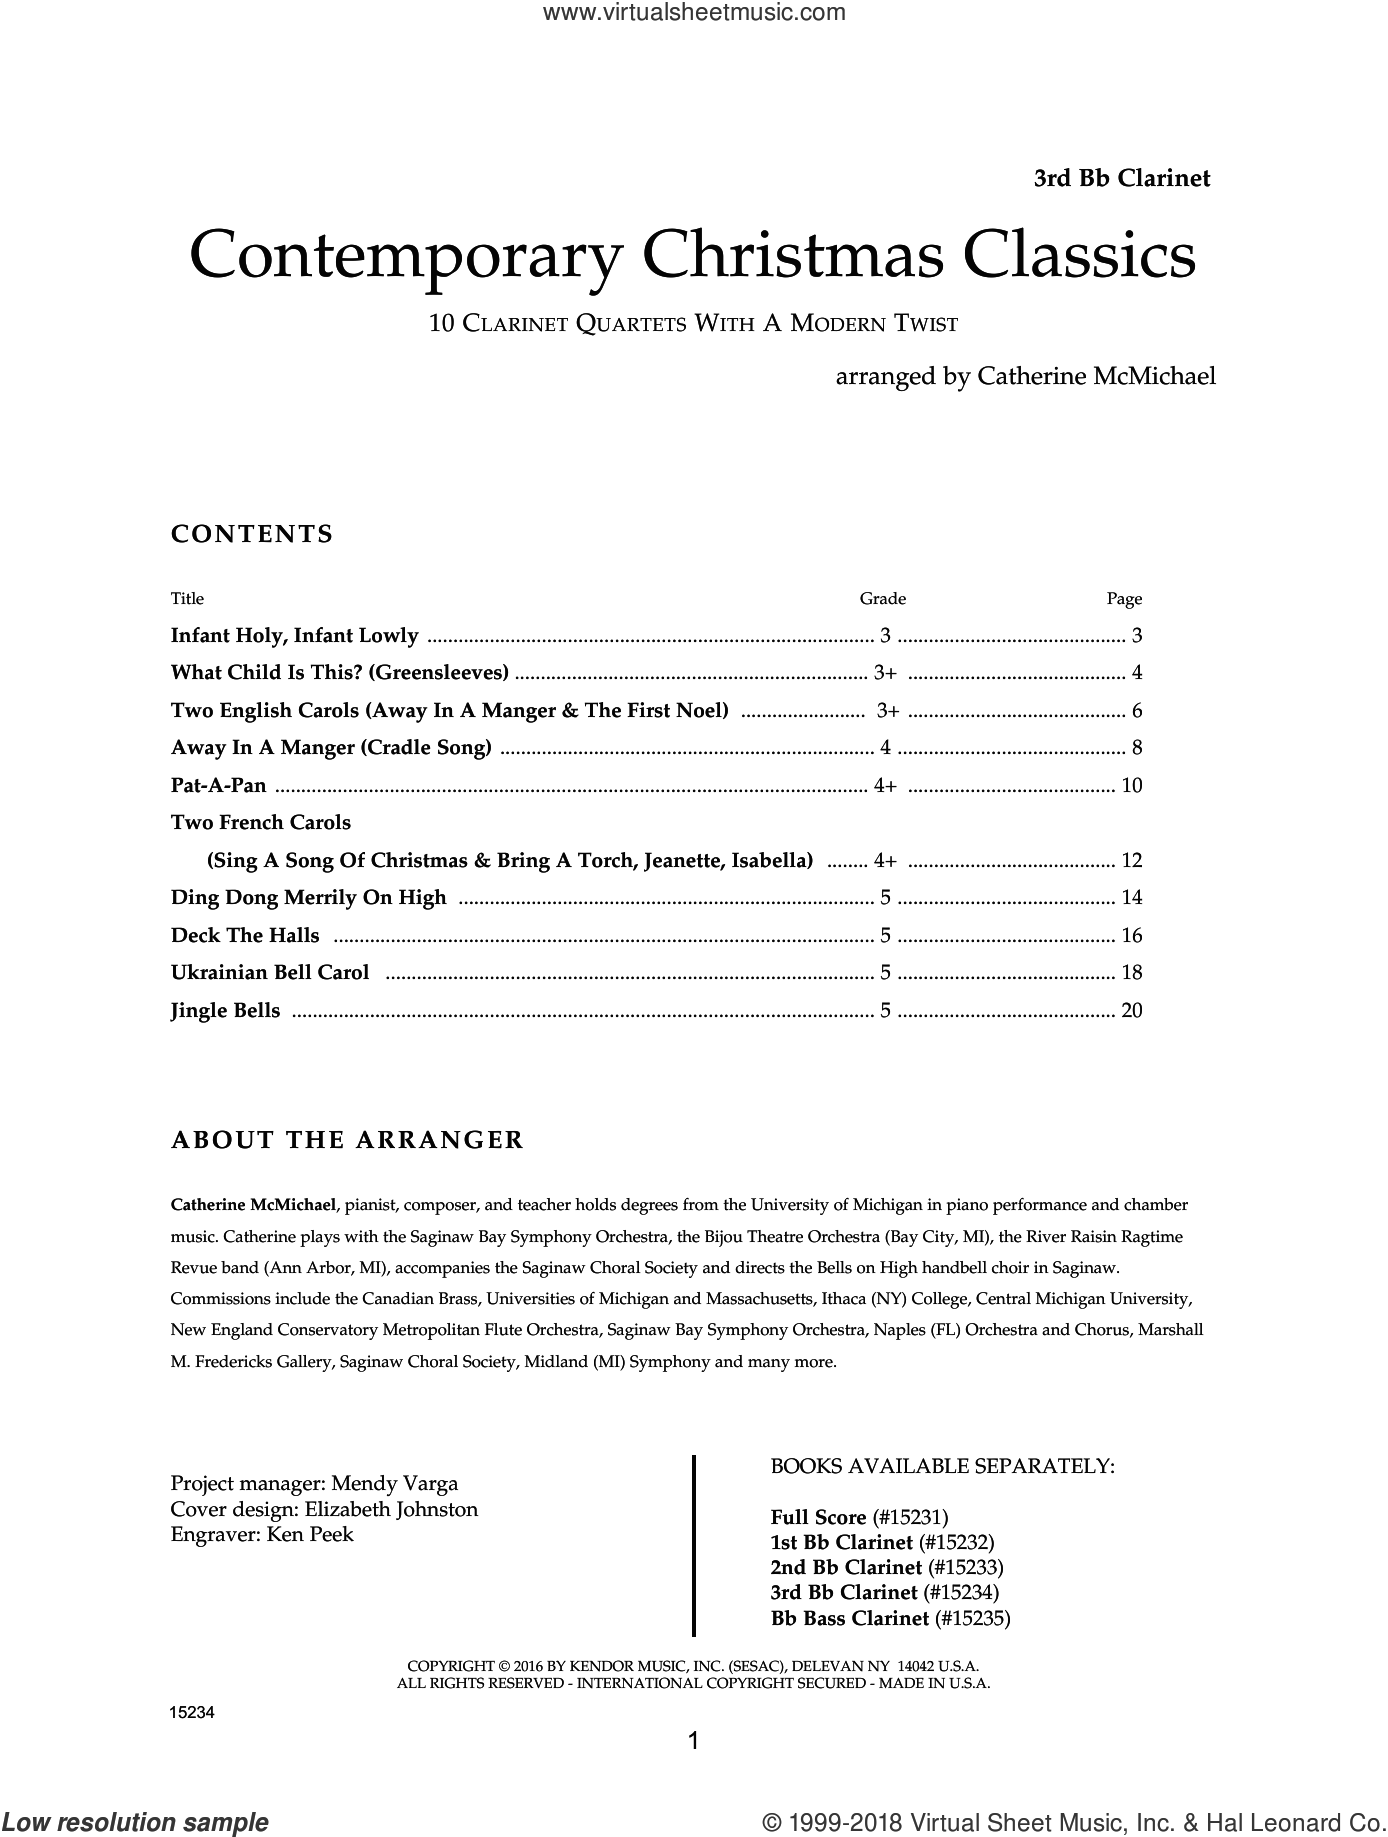 Contemporary Christmas Classics - 3rd Bb Clarinet sheet music for clarinet quartet by Catherine McMichael, intermediate